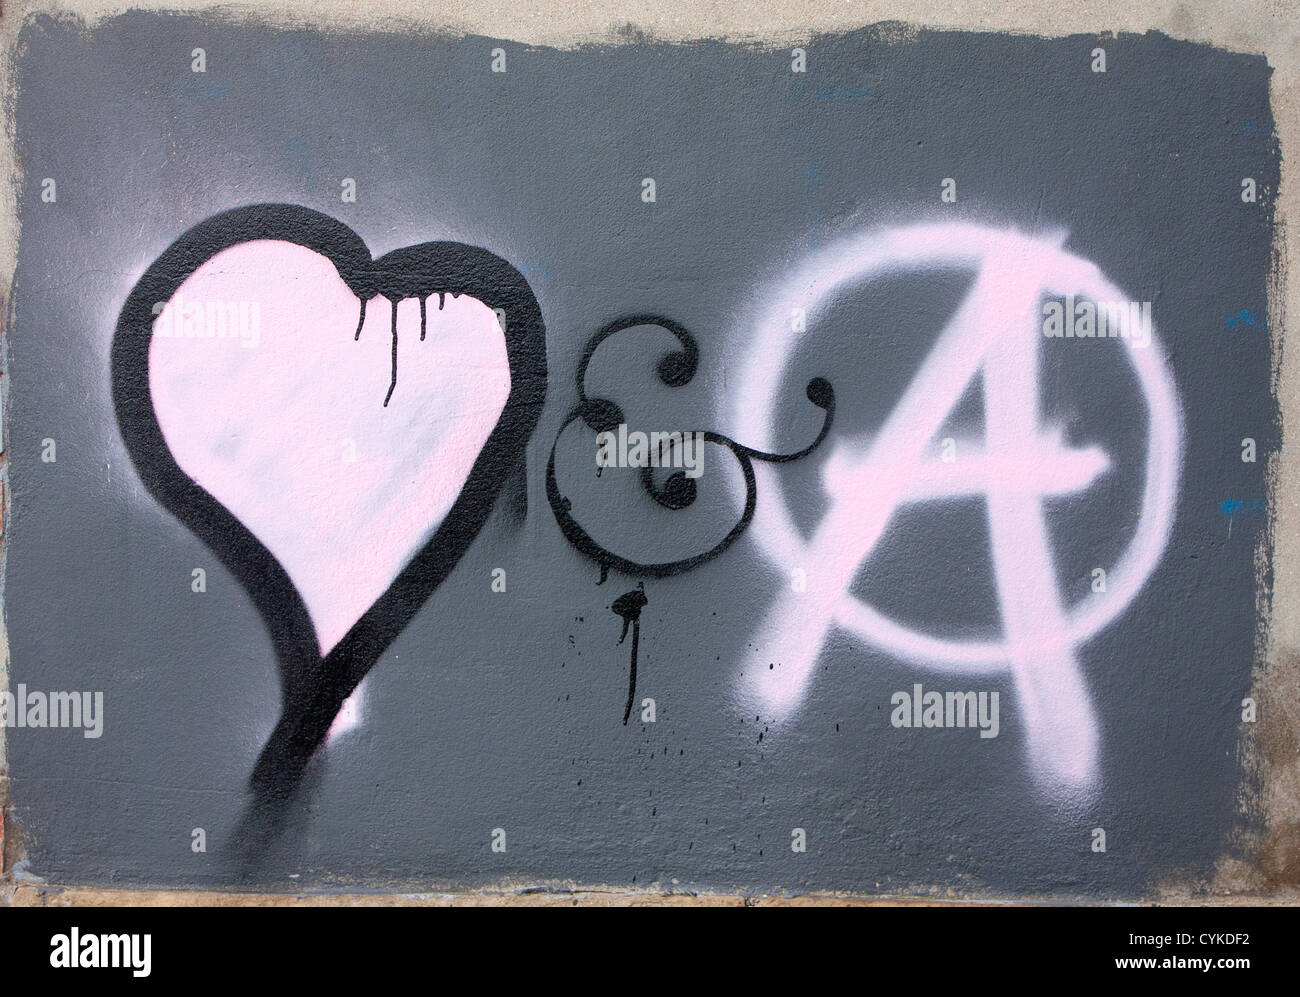 Heart And Capital A In Circle Symbols Of Love And Anarchy Graffiti Art On Wall Cardiff Wales Uk